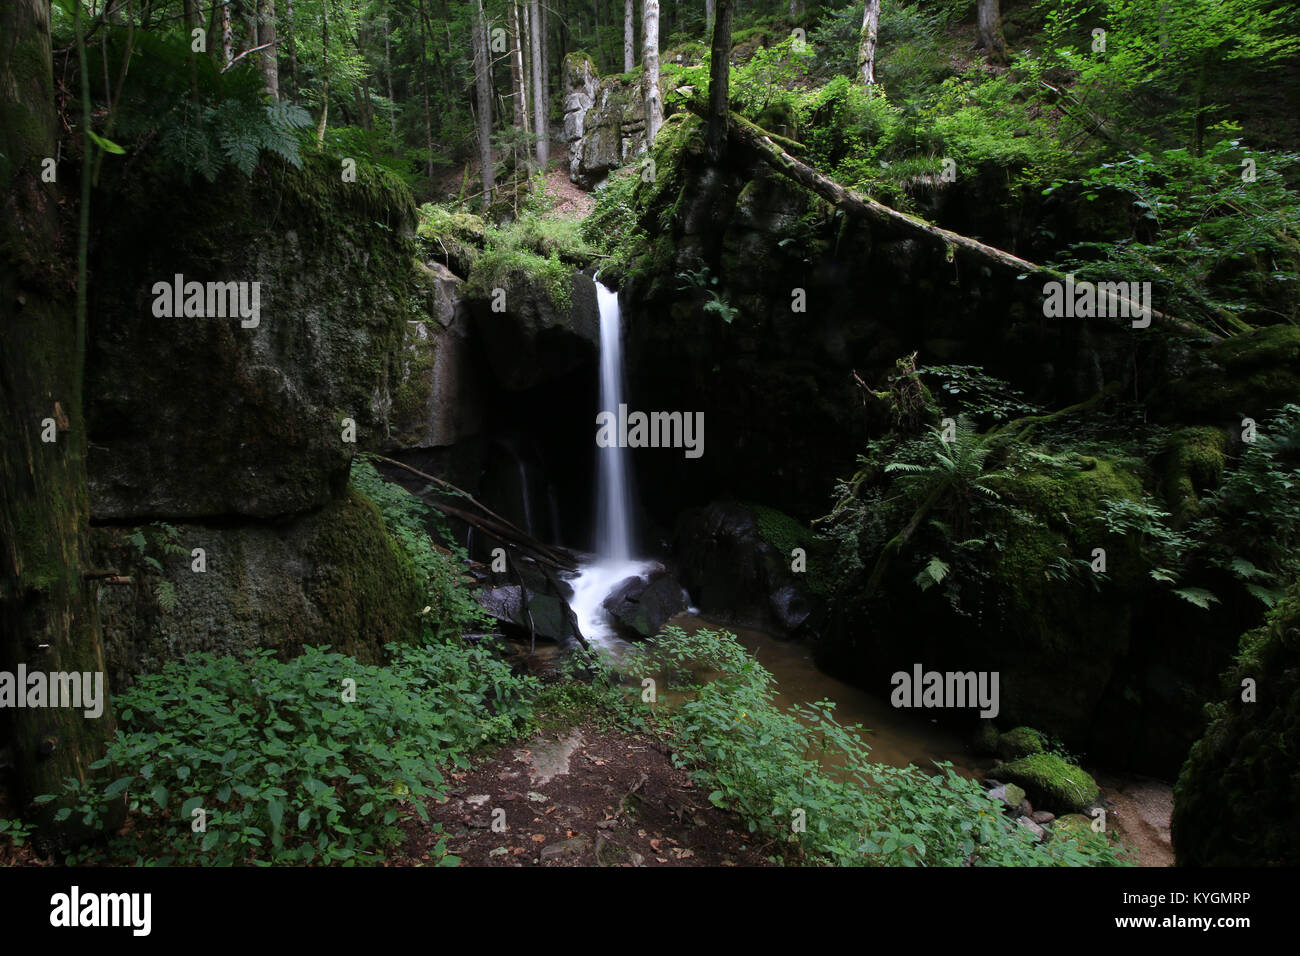 Waterfalls in Baden-Württemberg, Germany - Stock Image